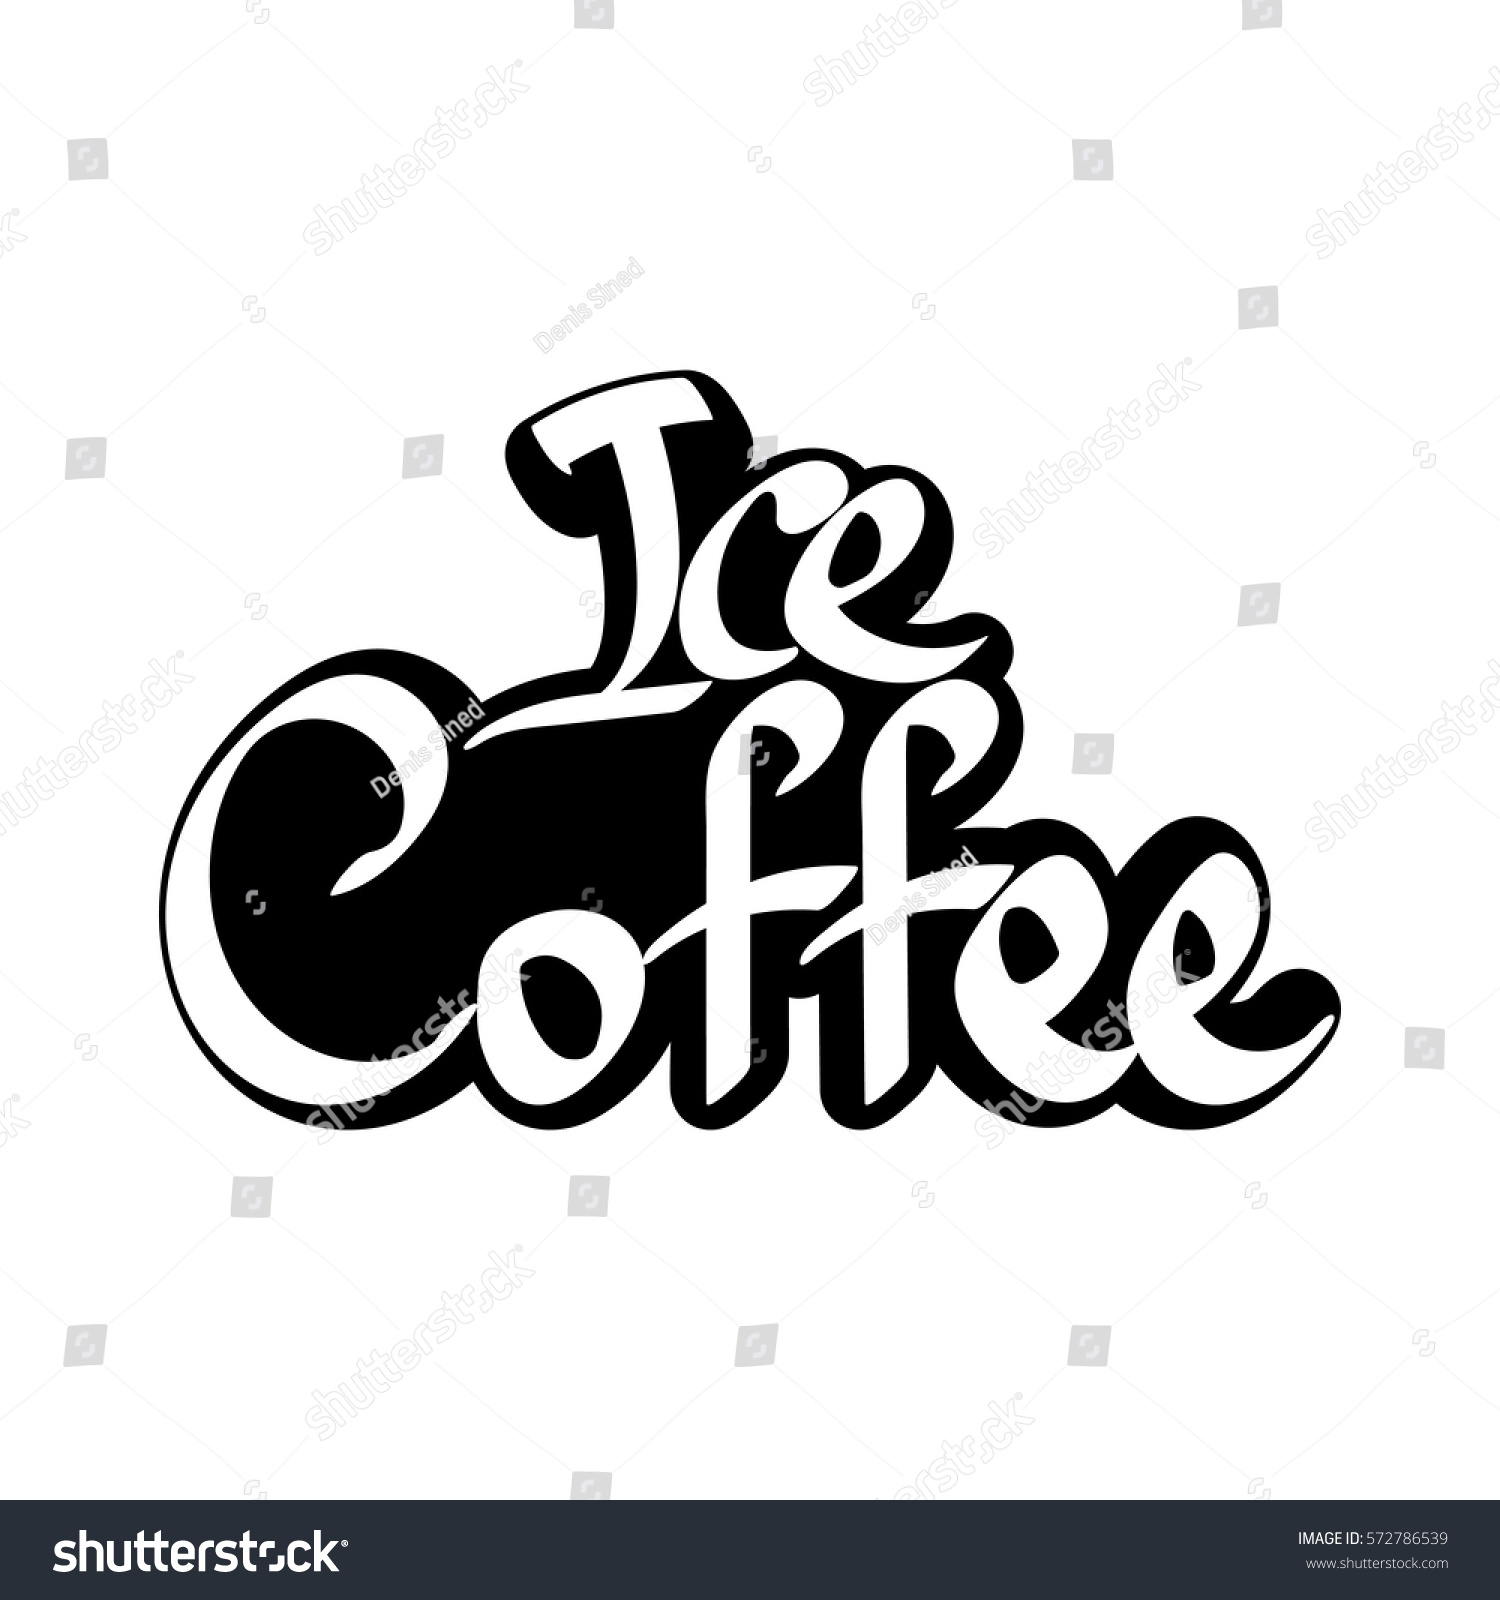 Ice Coffee Isolated Sticker Calligraphy Lettering Stock